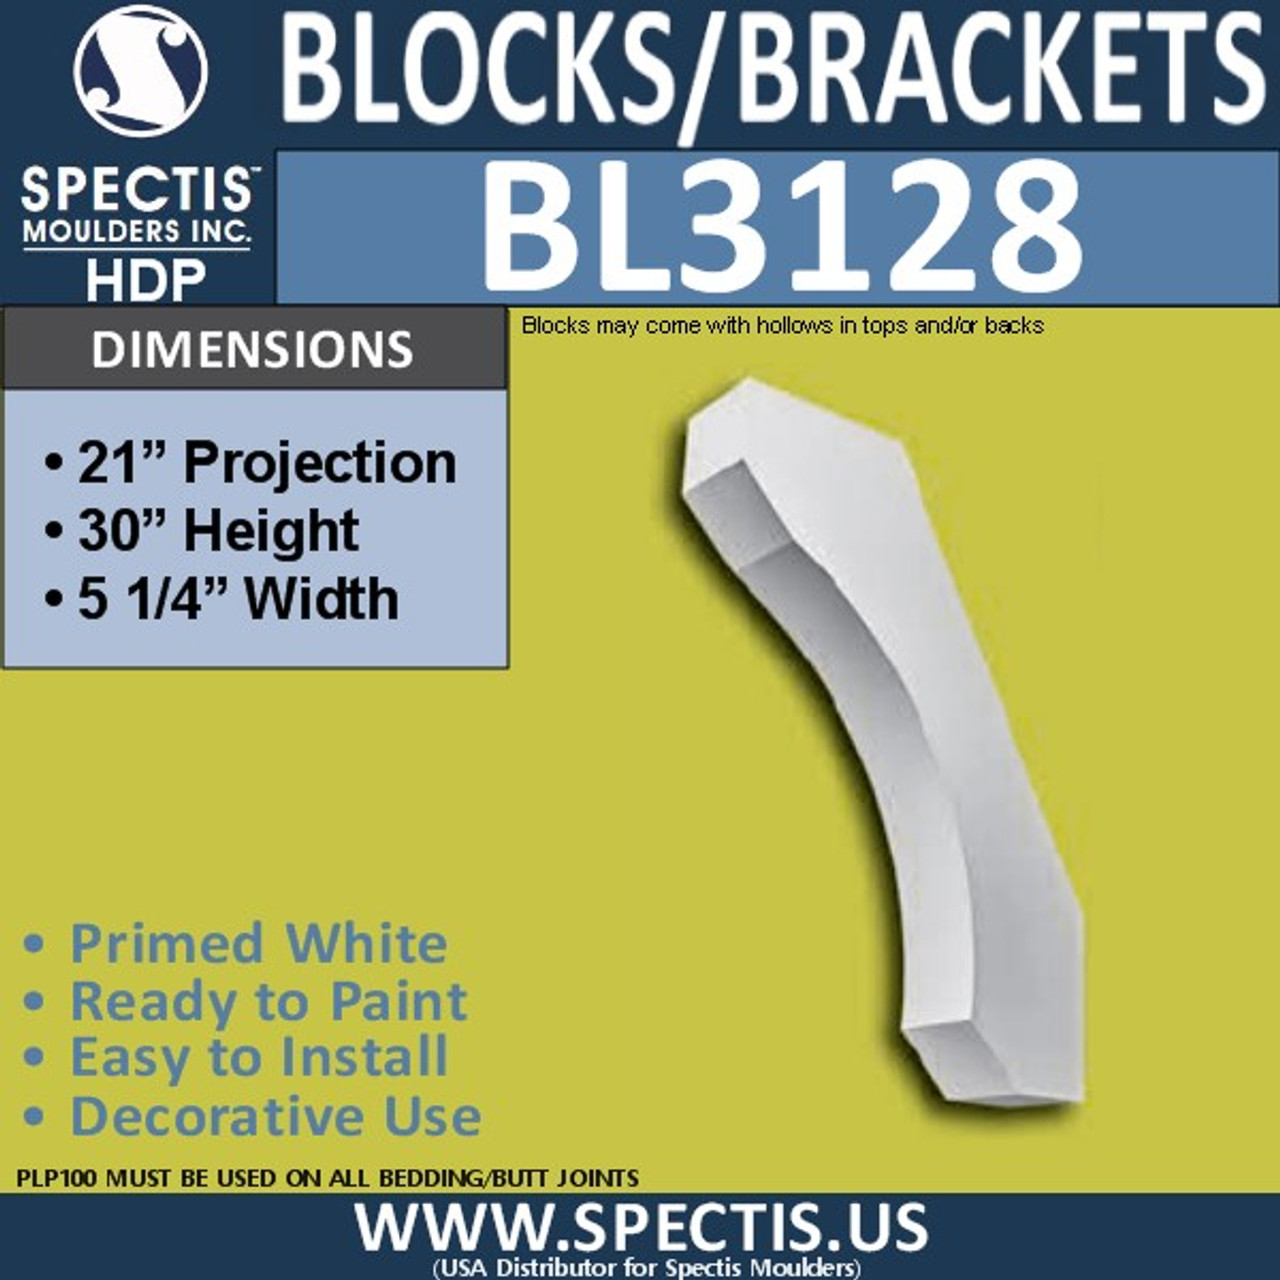 "BL3128 Eave Block or Bracket 5.25""W x 30""H x 21""P"